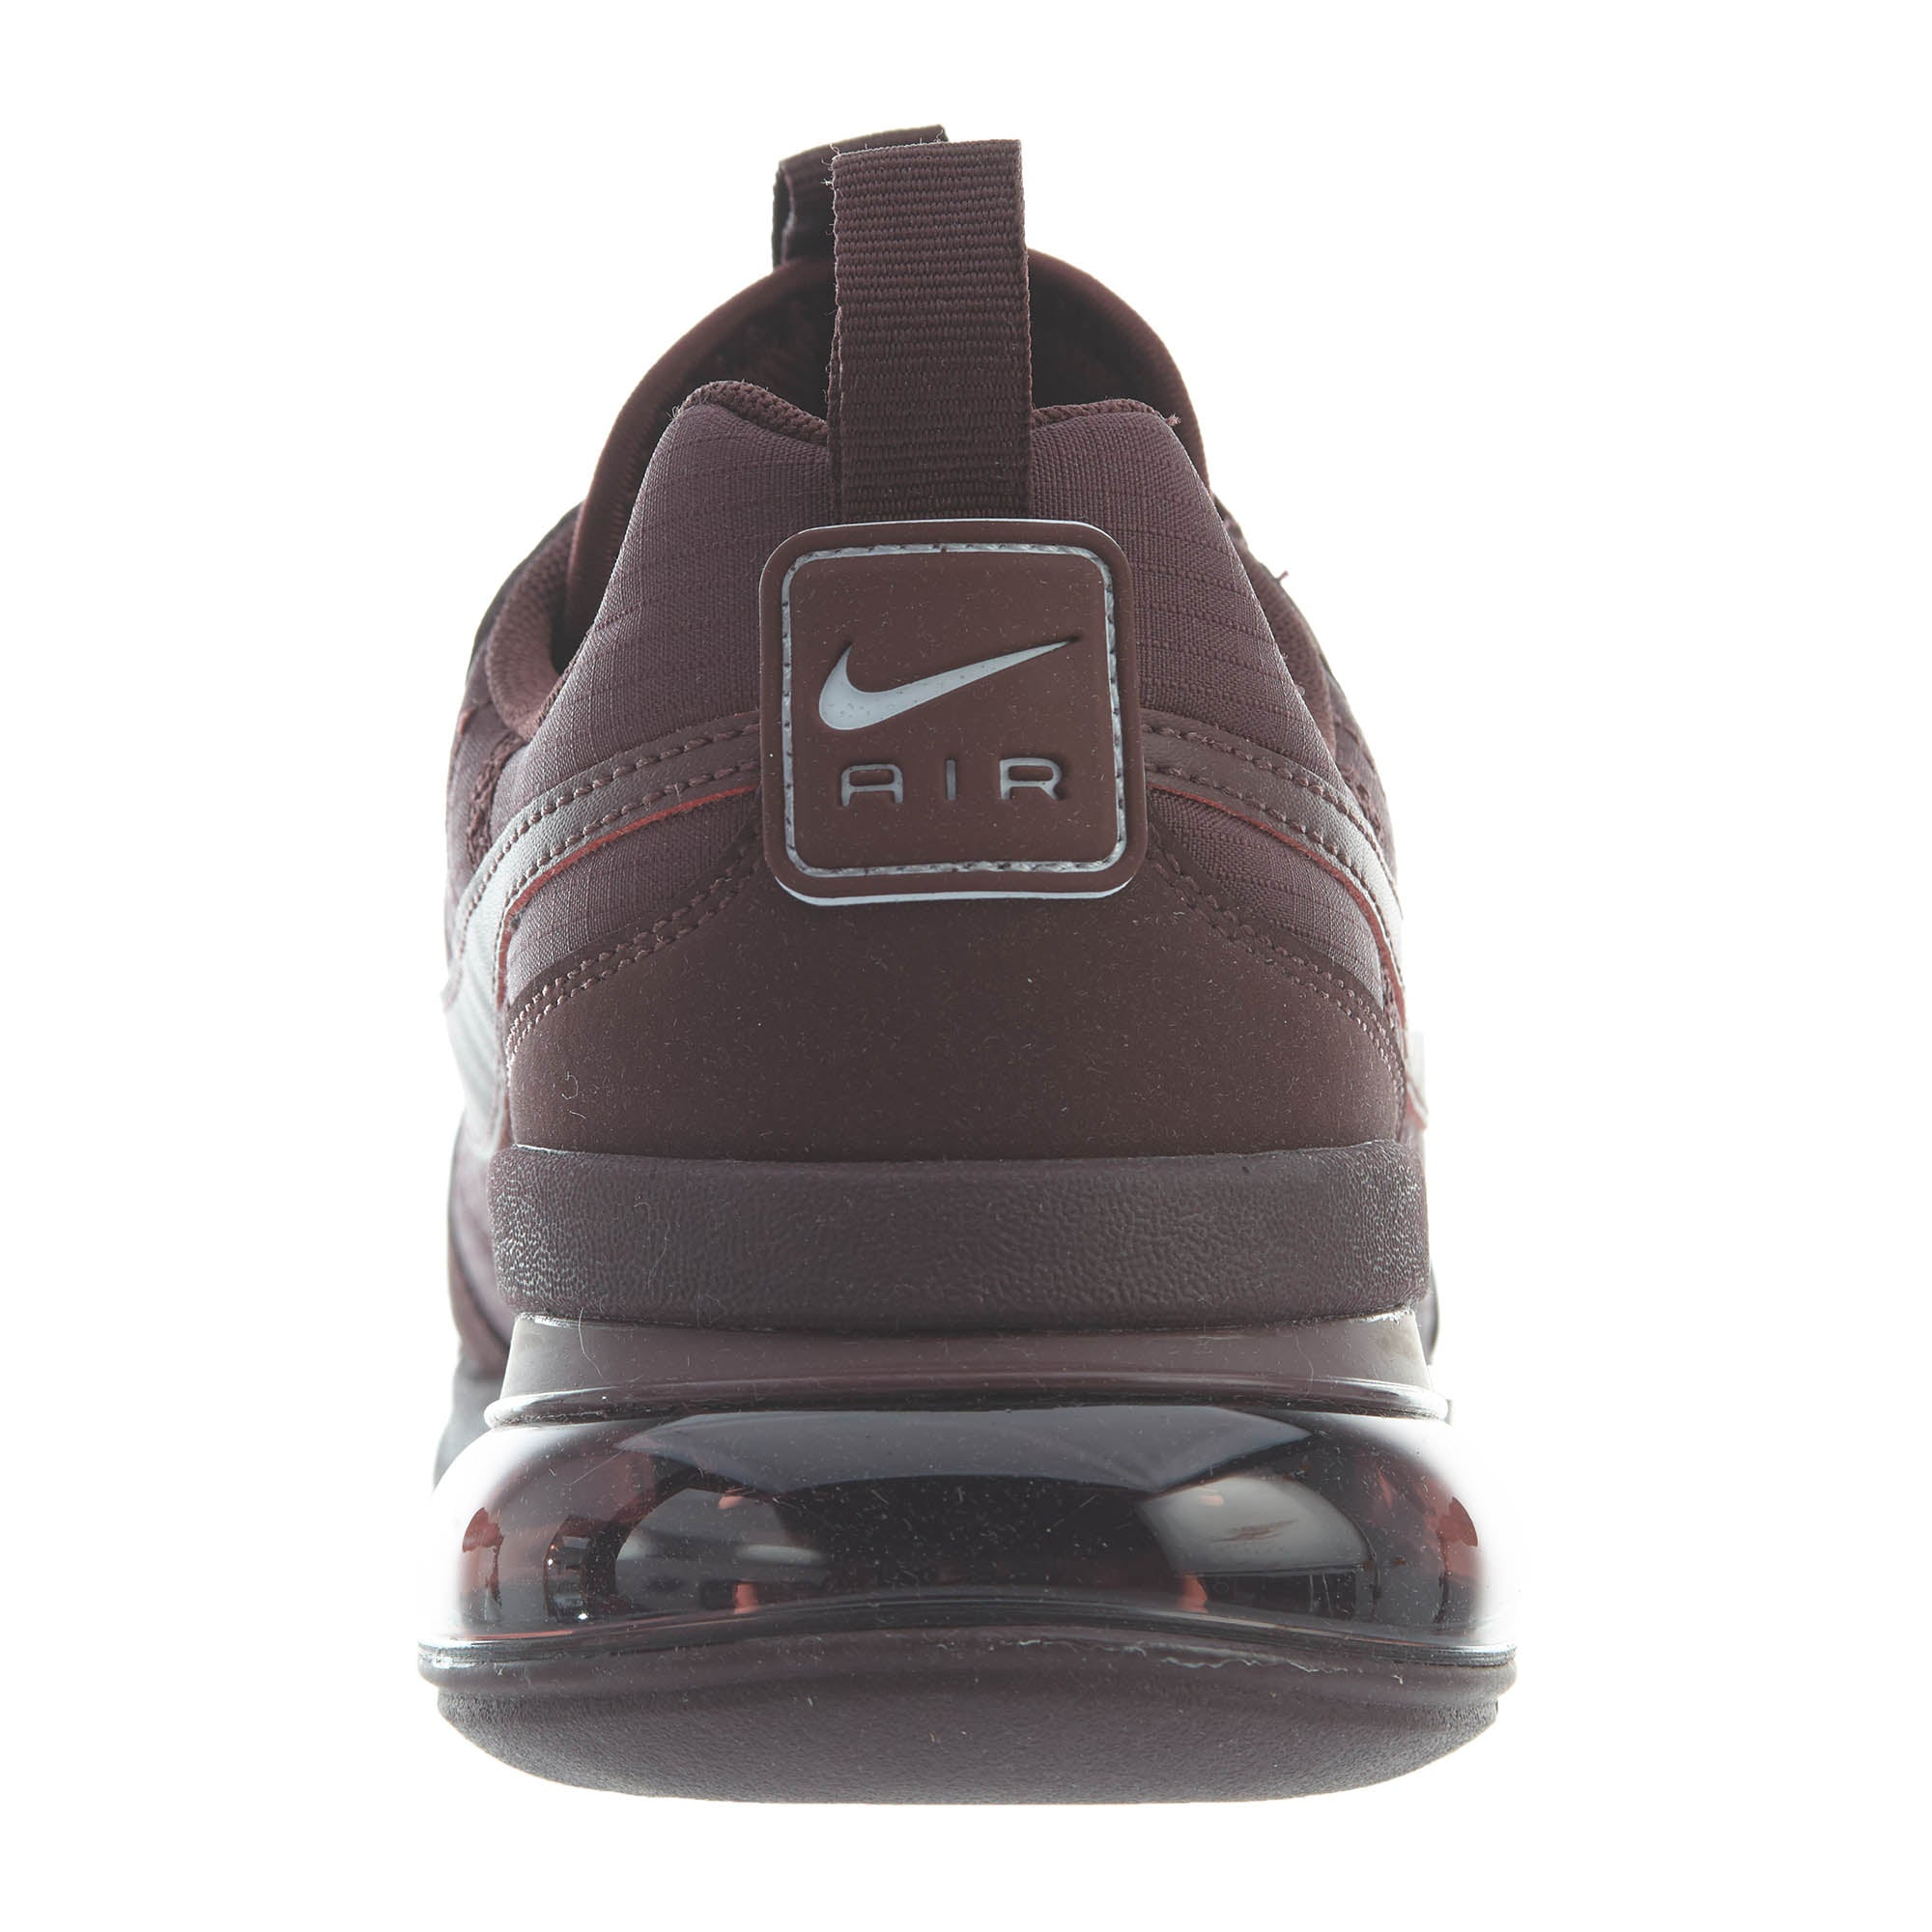 buy online f09a8 dd5ea Nike Air Max 270 Futura Mens Style   Ao1569-600. NIKE   Athletic Shoes    Sneakers